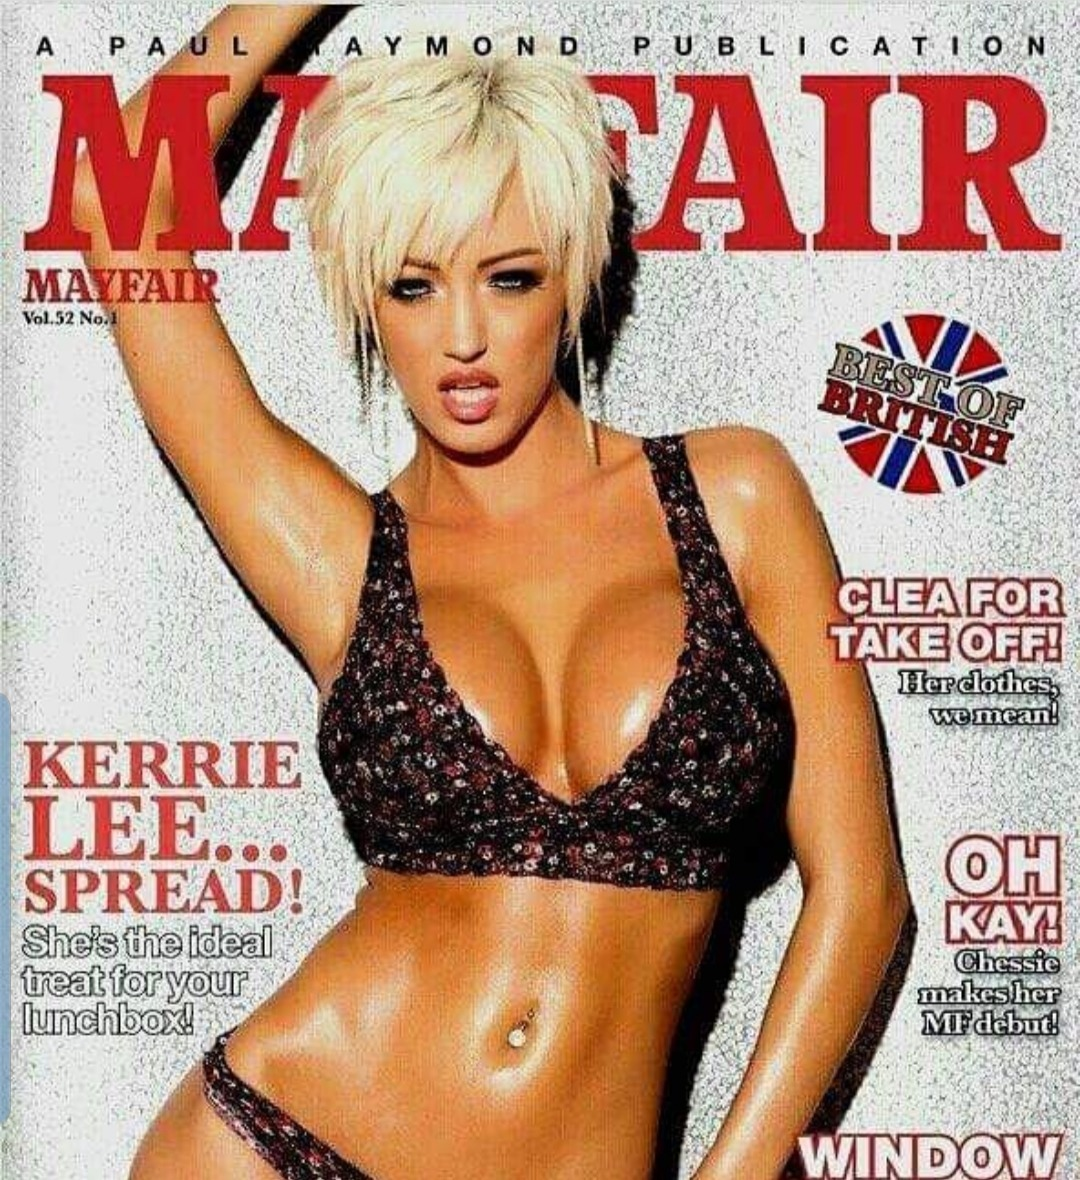 kerrie lee slim busty blonde short hair in black patterned bikini posing for a magazine showing curves